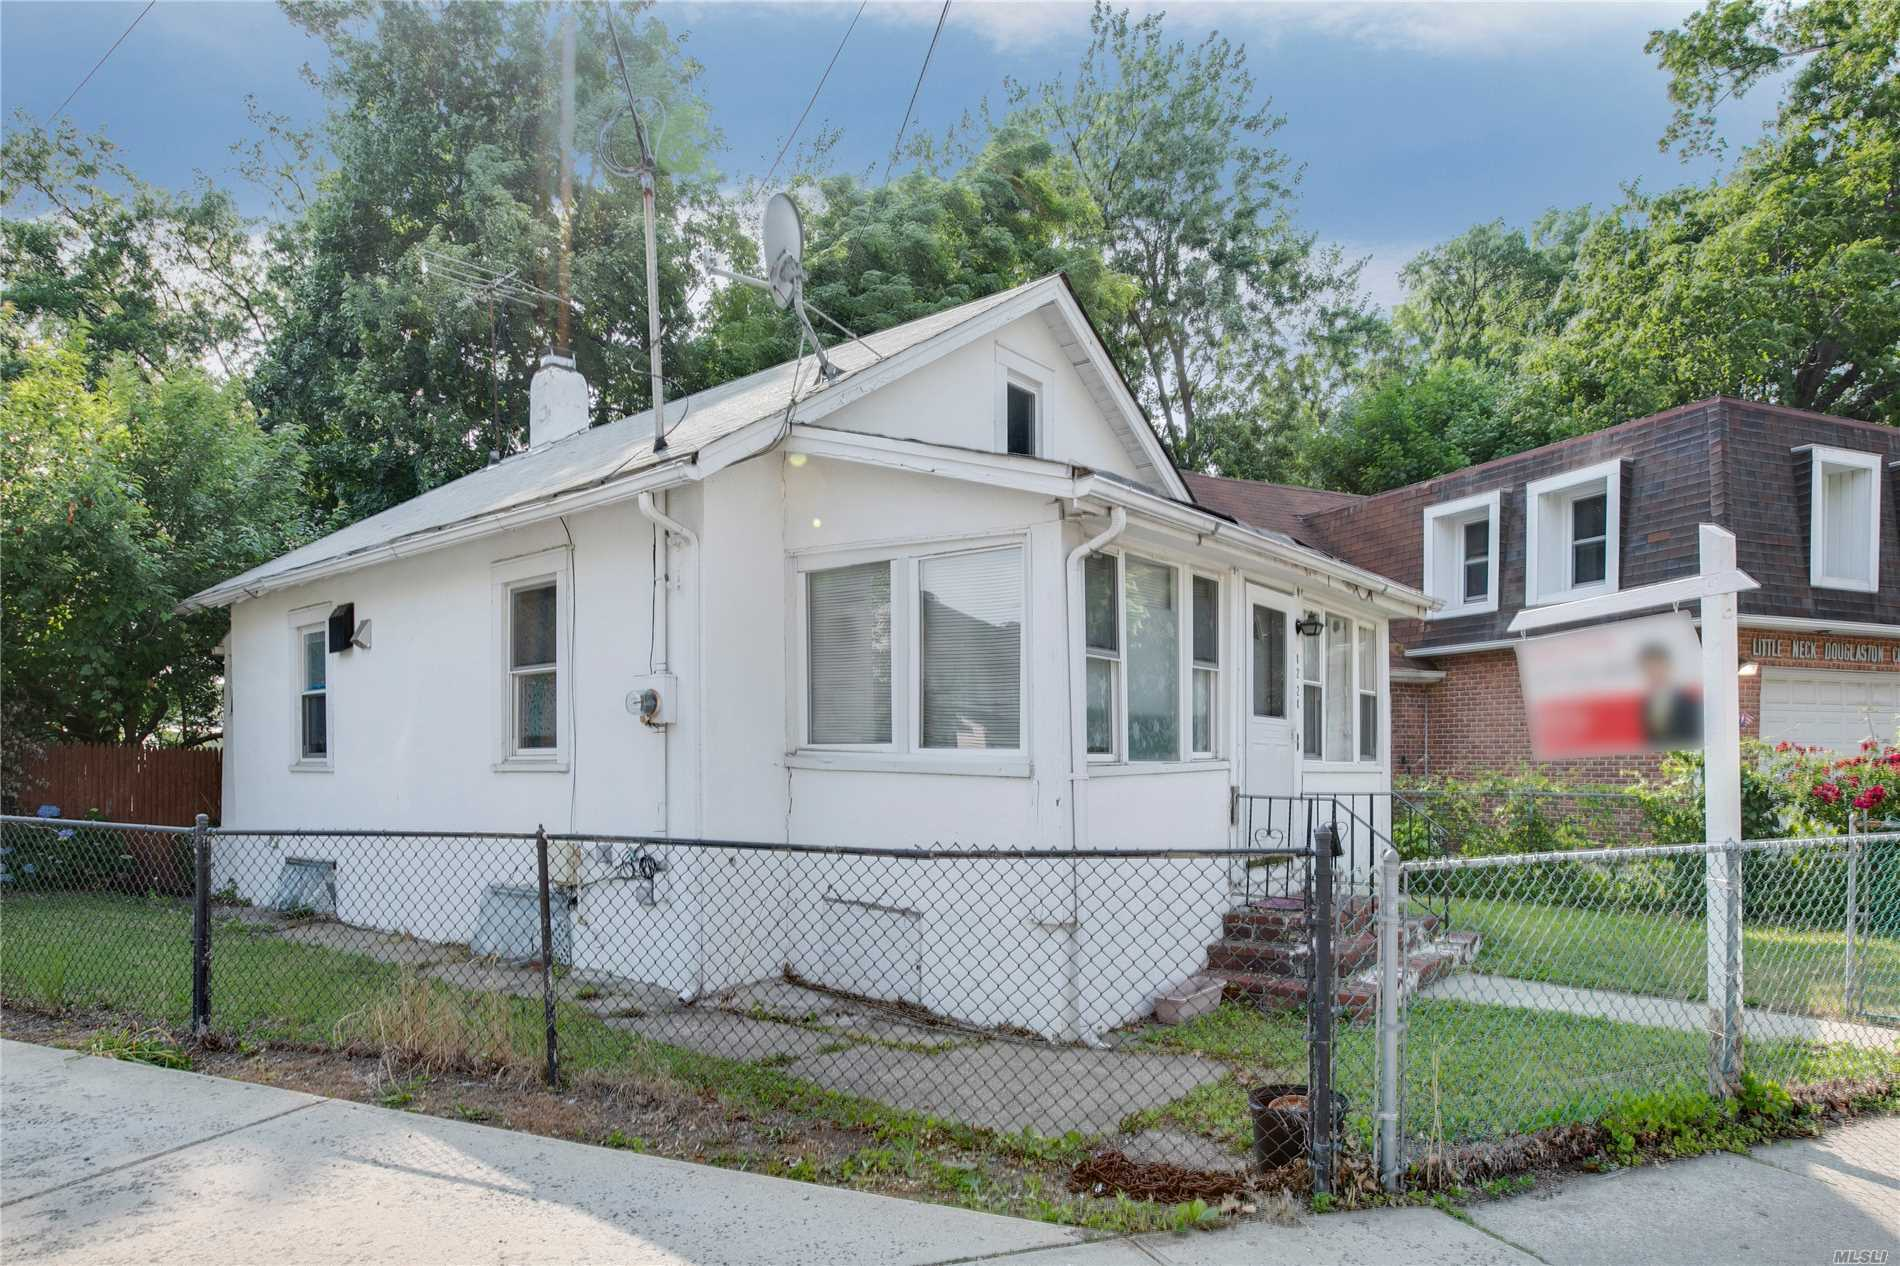 Great Opportunity For A Starter Home Or Rental Income Investment. Can't Beat The Location, 0.4 Miles To Lirr Little Neck Station, 1 Block To Northern Blvd And Q12, Qm3, N20, N20G, Restaurants, Post Office, Stop & Shop Supermarkets, Etc. Ps 94 David D Porter Is 1 Block Away.